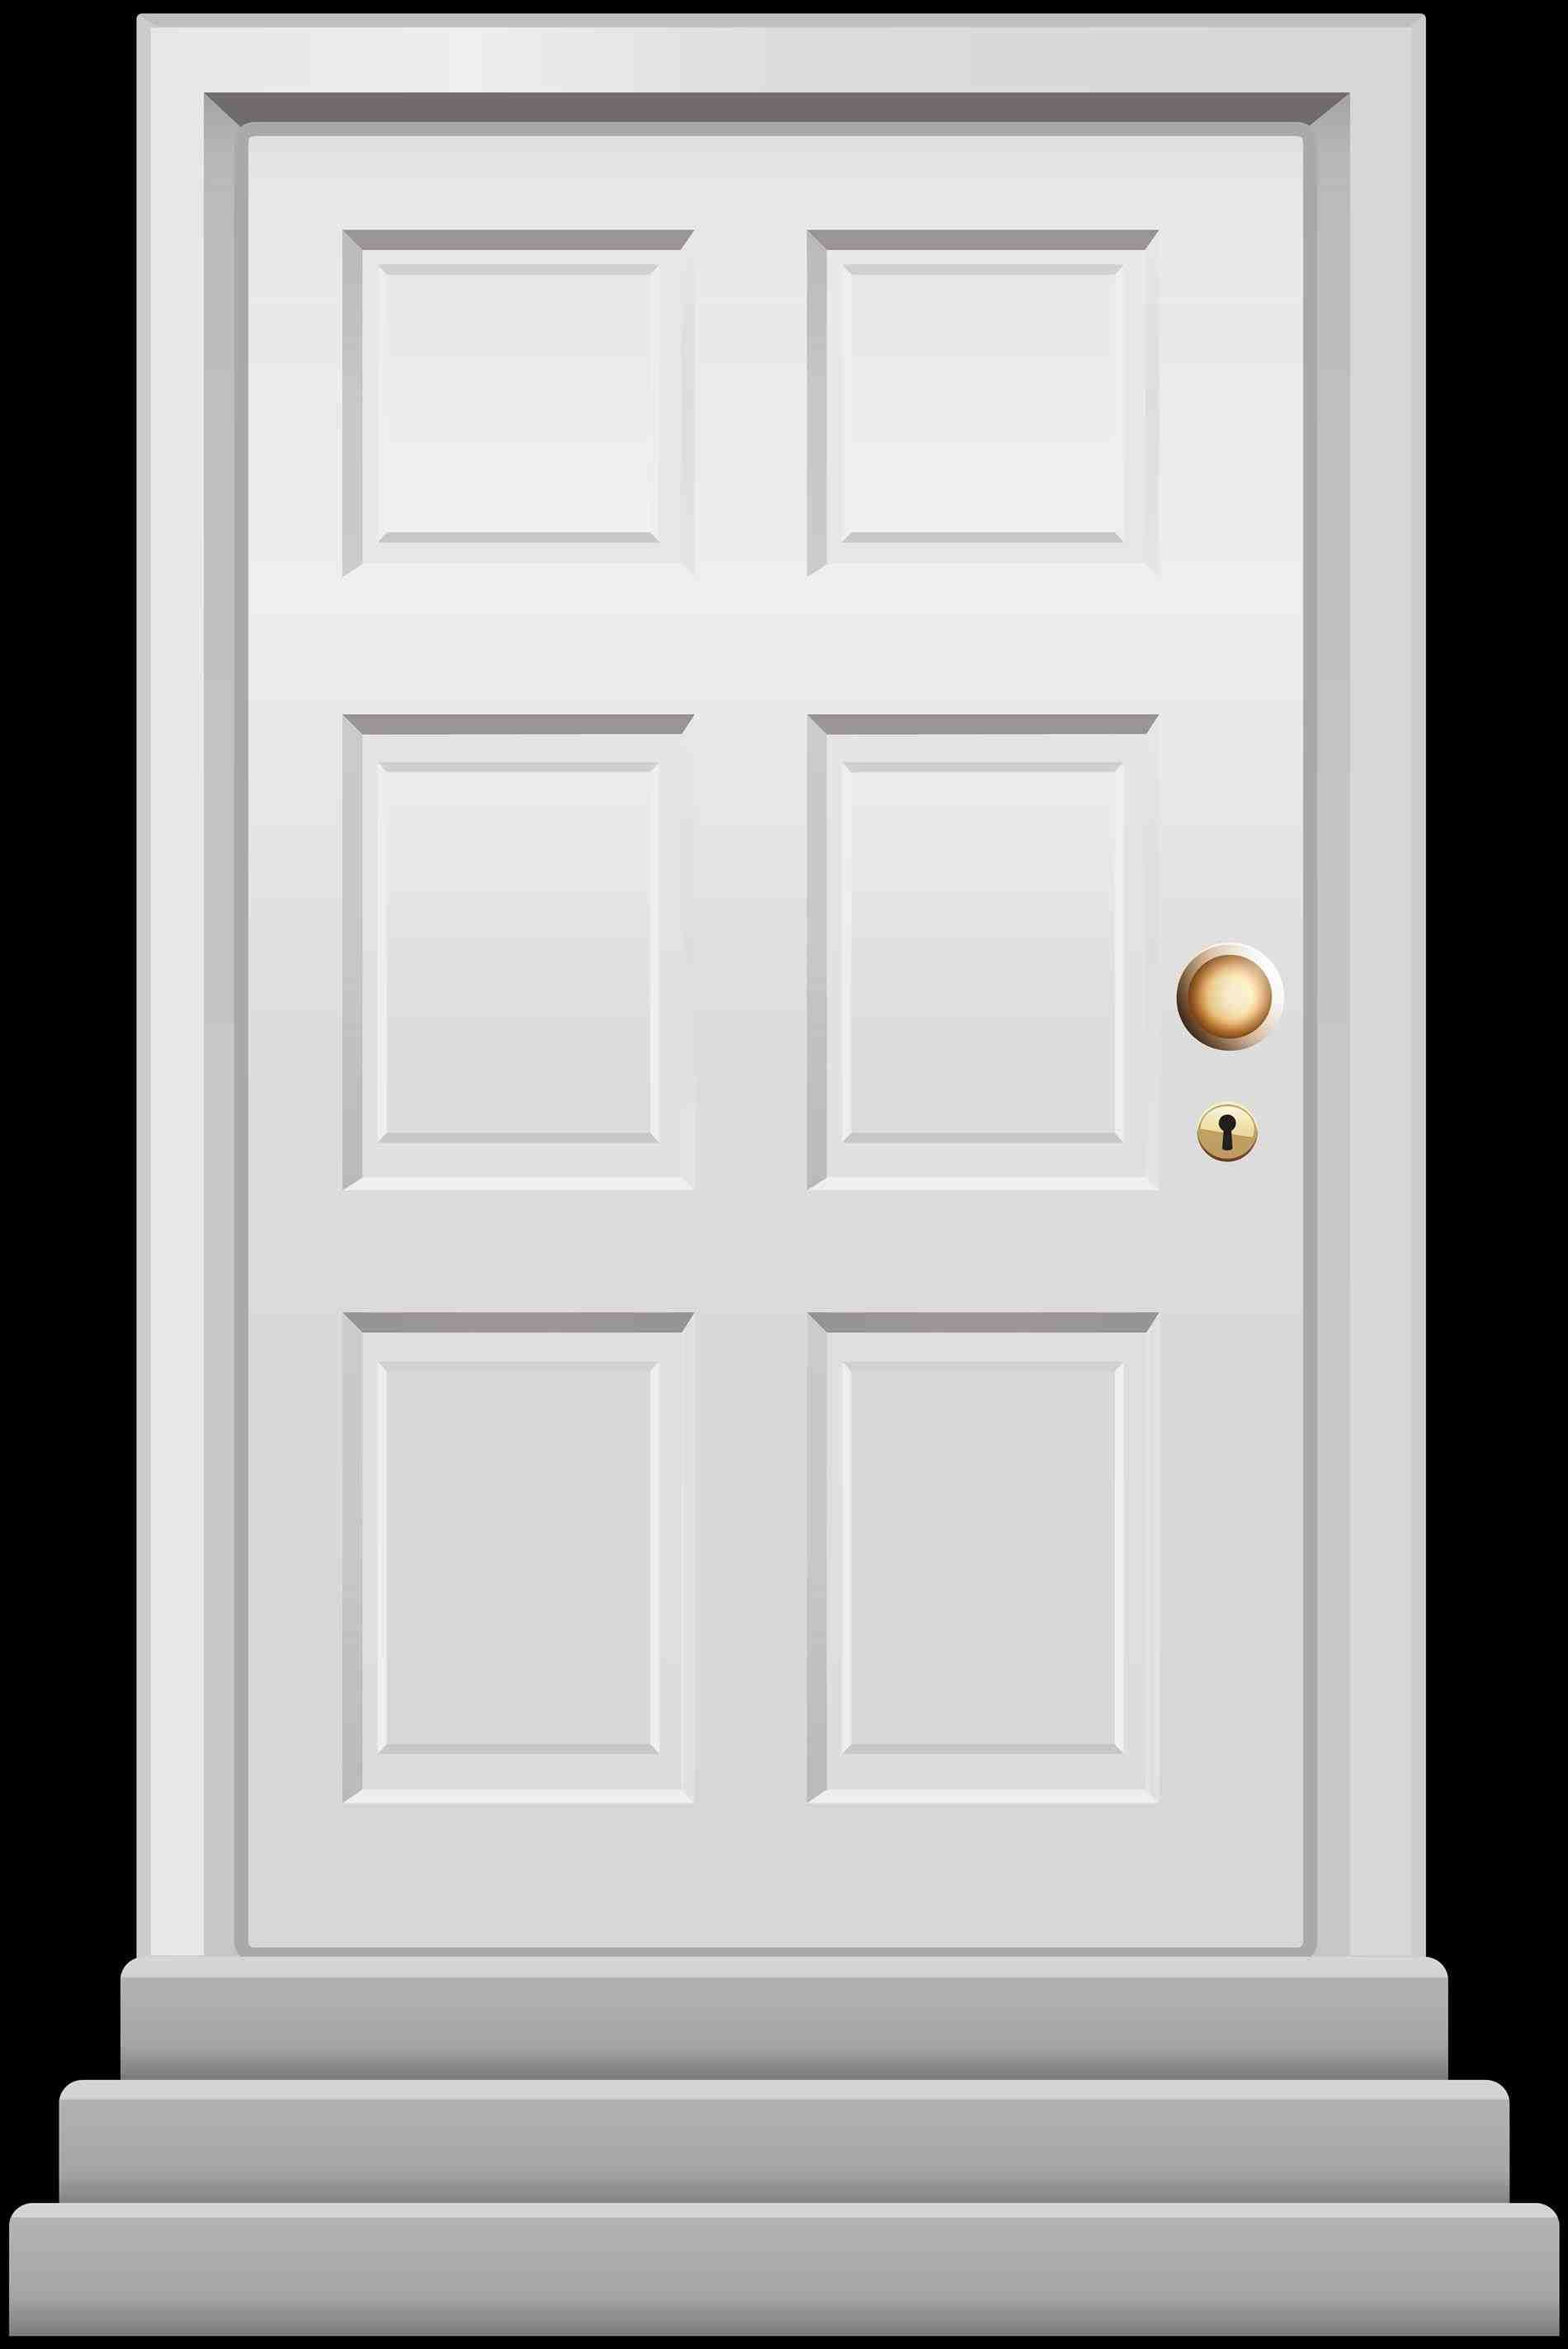 49+ Wooden door clipart black and white information